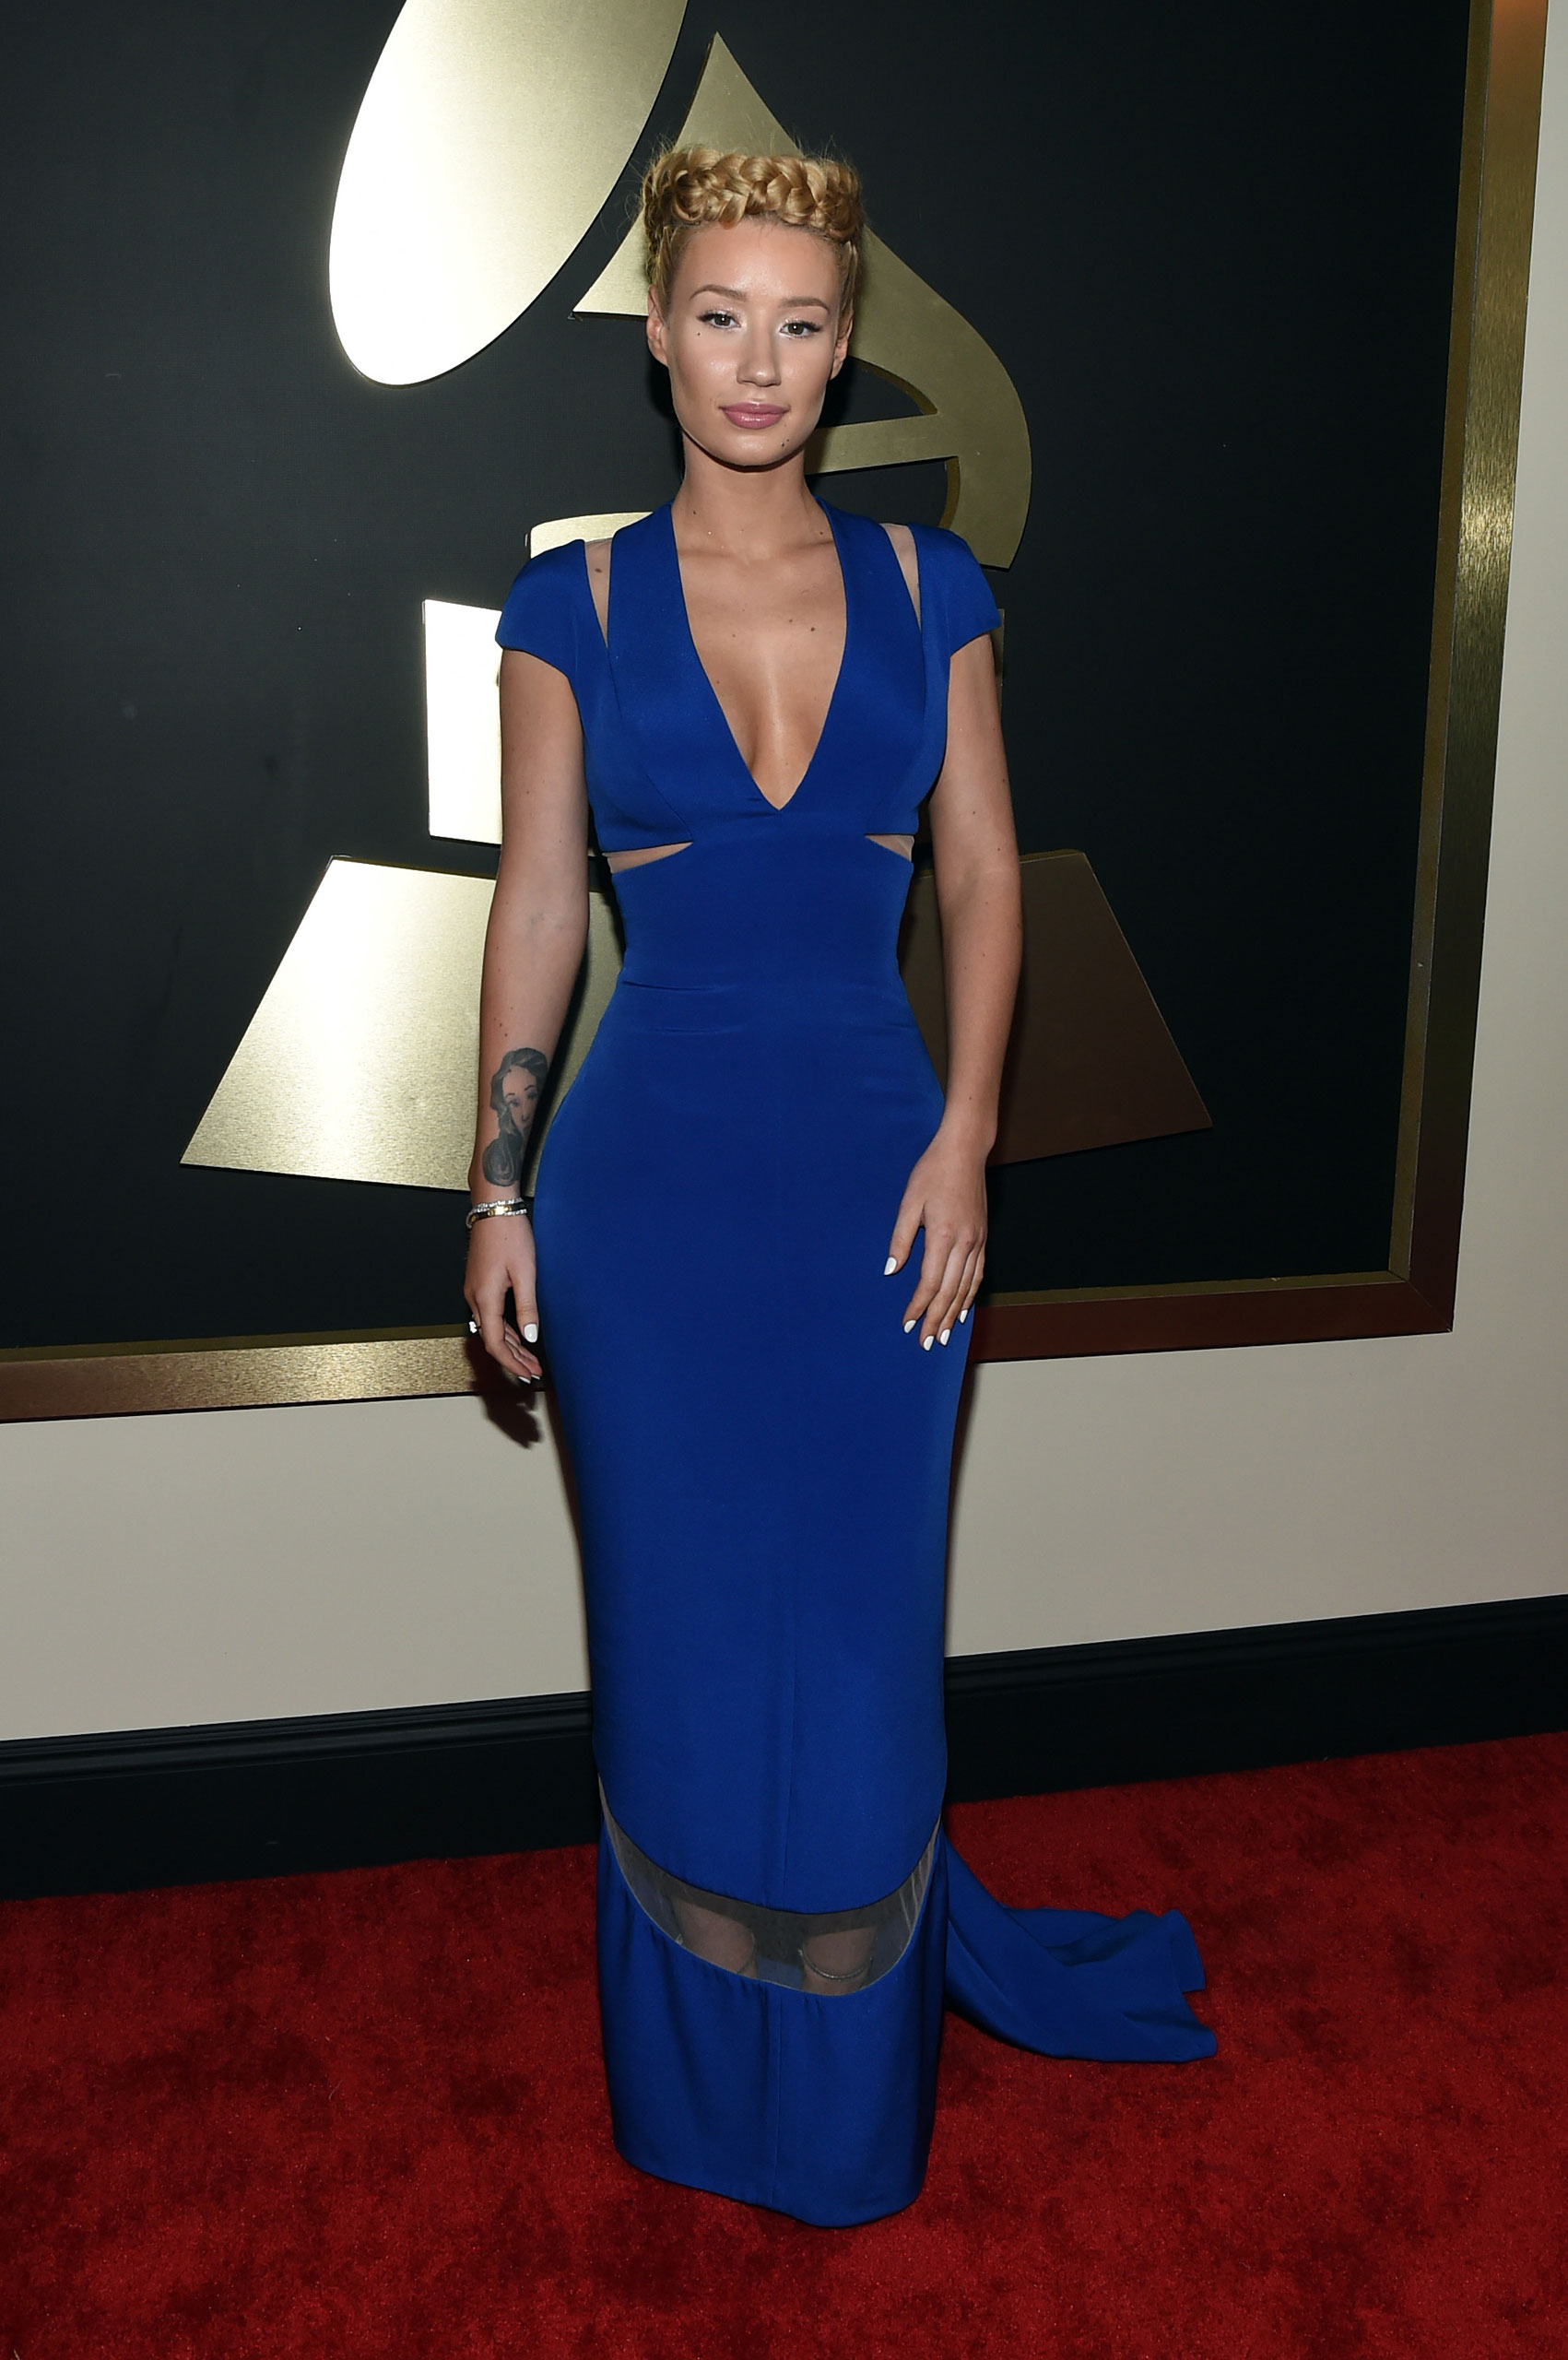 Iggy Azalea attends the 57th Annual Grammy Awards at the Staples Center on Feb. 8, 2015 in Los Angeles, Calif.